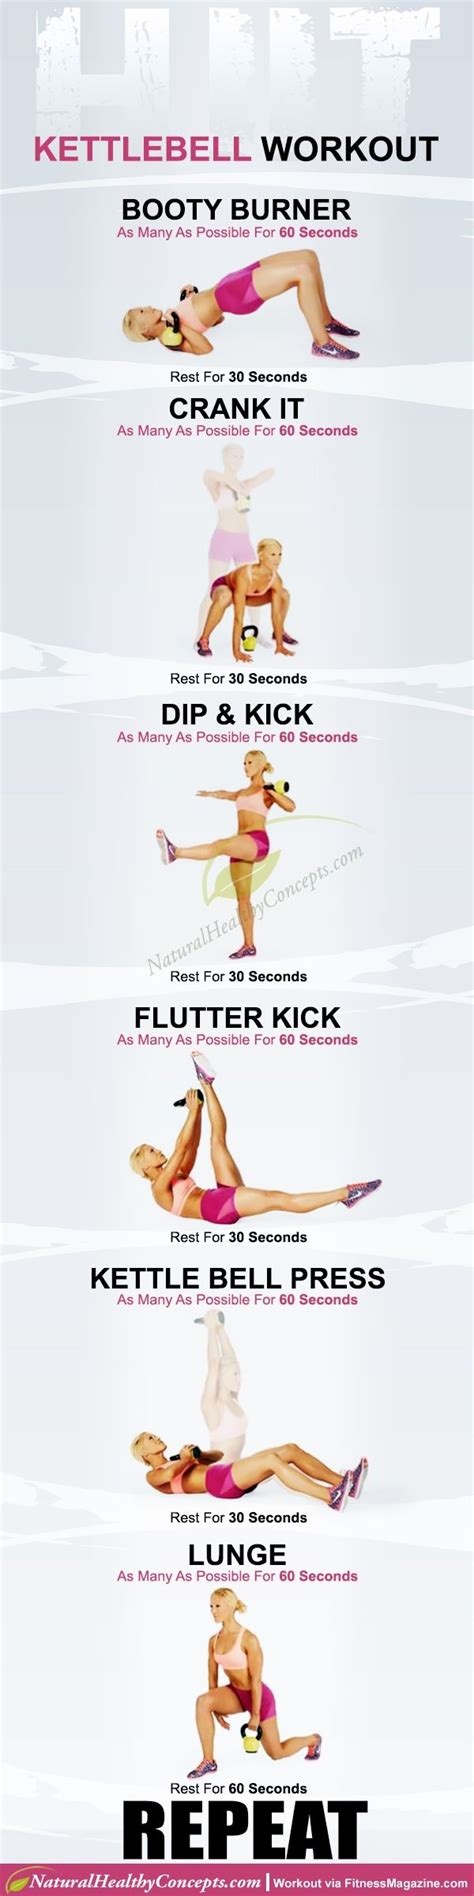 kettlebell hiit workout minute workouts fitness wednesday exercise training exercises printable body graphic healthy week naturalhealthyconcepts tabata motivation kettle bell